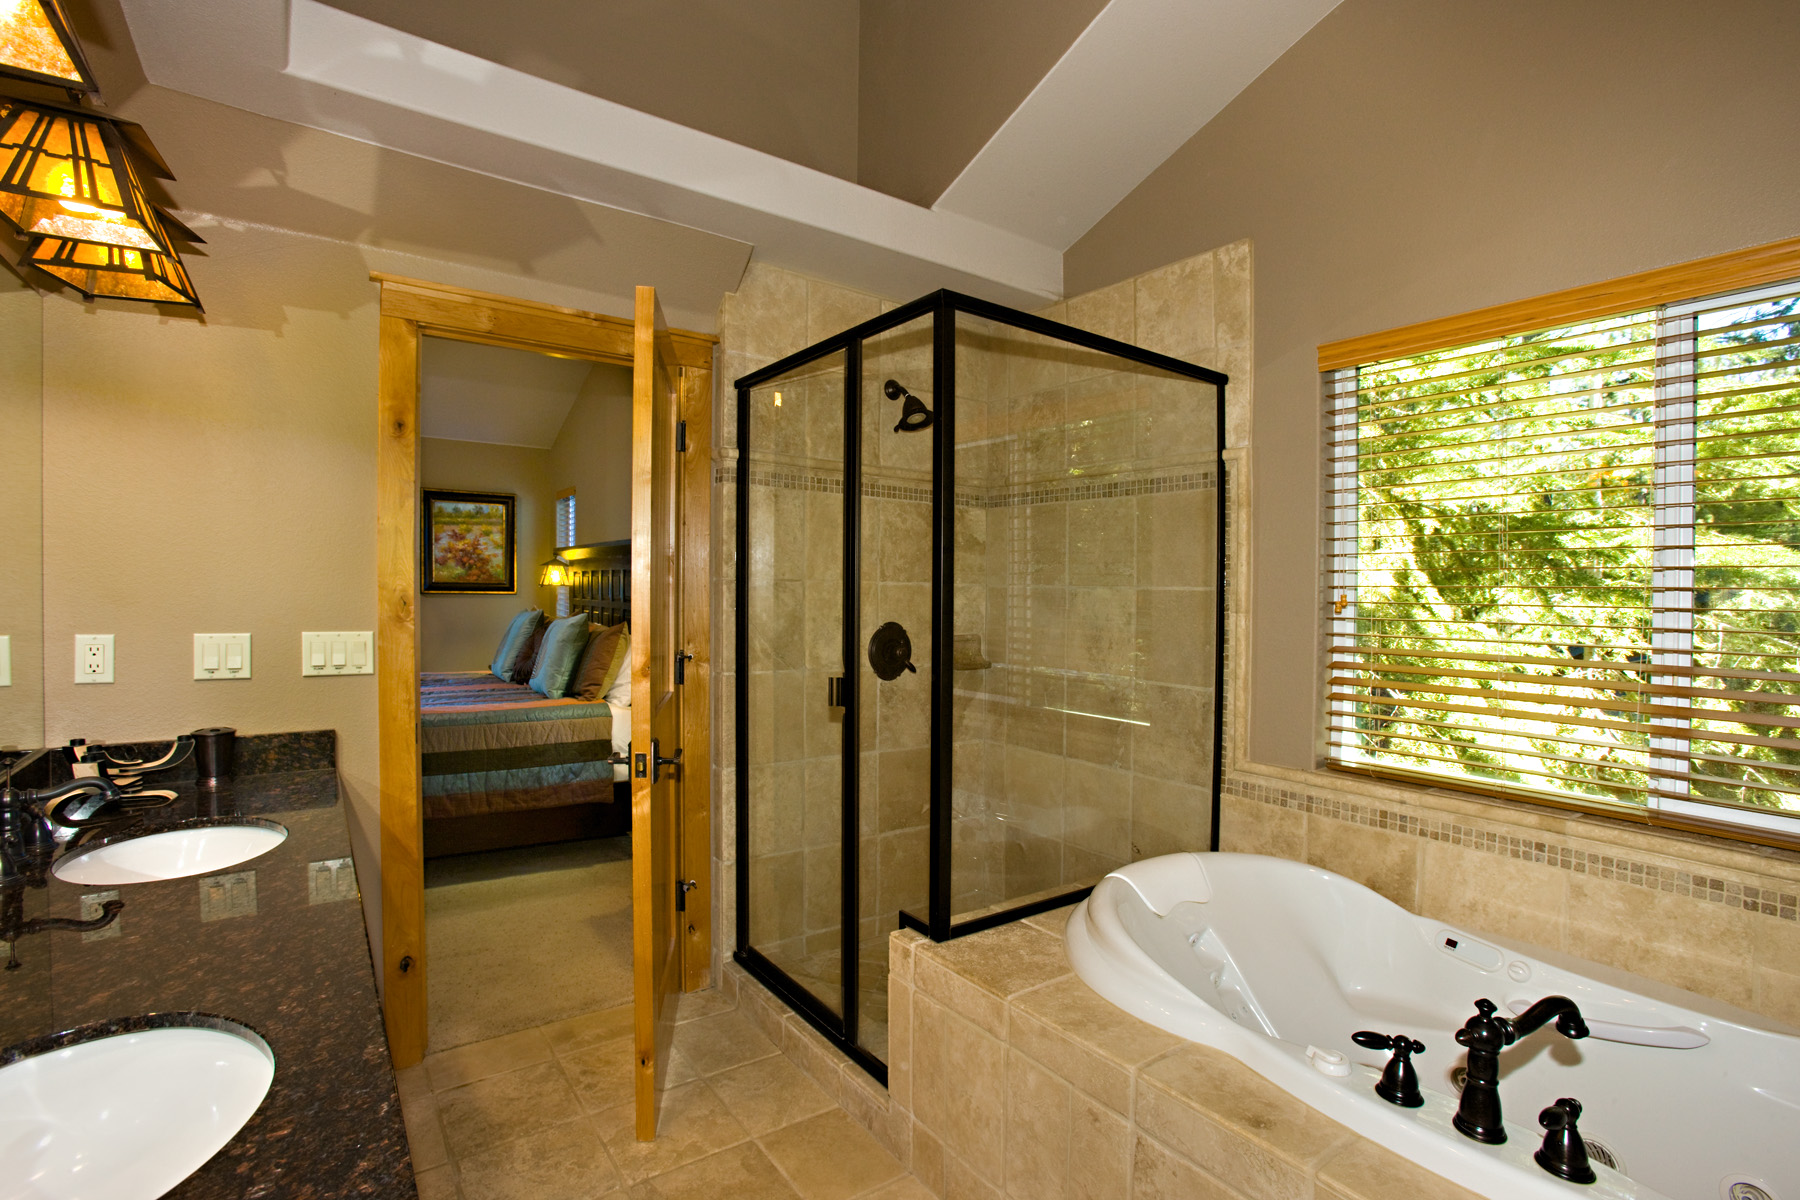 Plumas master bathroom with jacuzzi tub and shower